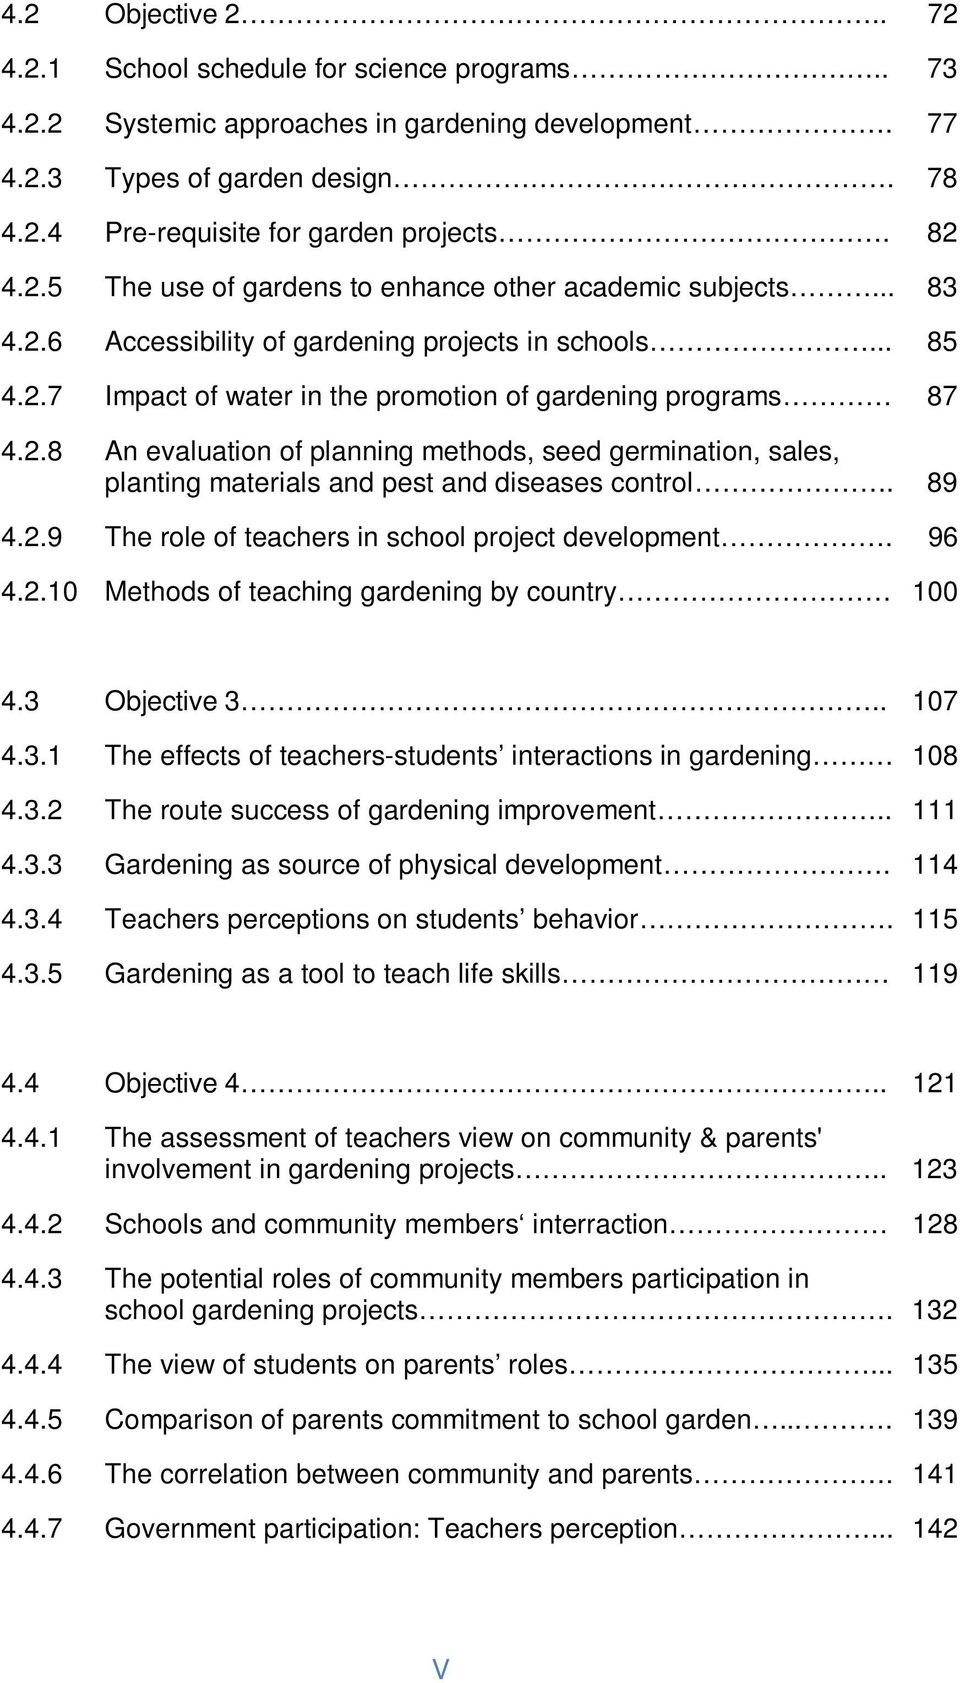 89 4.2.9 The role of teachers in school project development. 96 4.2.10 Methods of teaching gardening by country 100 4.3 Objective 3.. 107 4.3.1 The effects of teachers-students interactions in gardening 108 4.